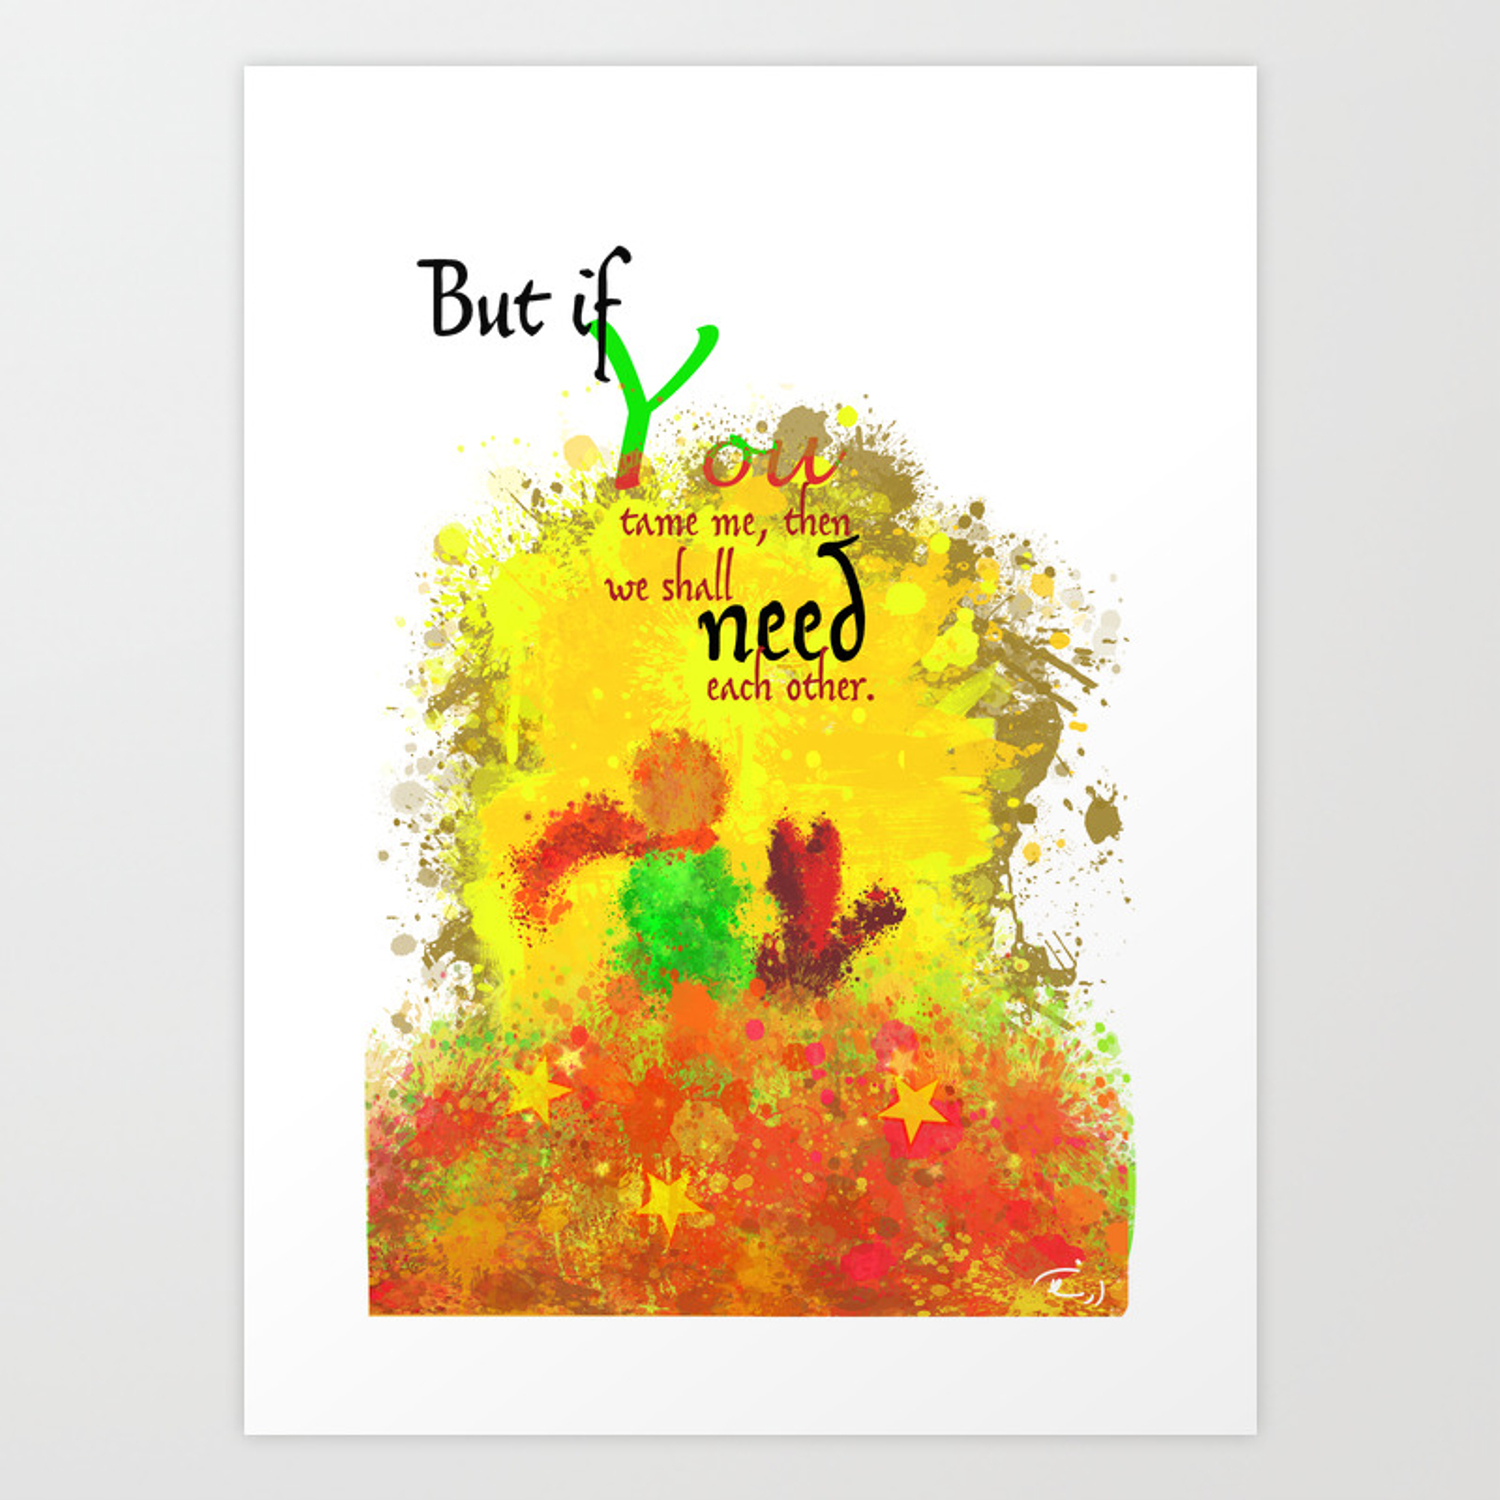 The Little Prince Quotes But If You Tame Me Then We Shall Need Each Other Part 1 Of 3 B2 Art Print By Arsalanes Society6